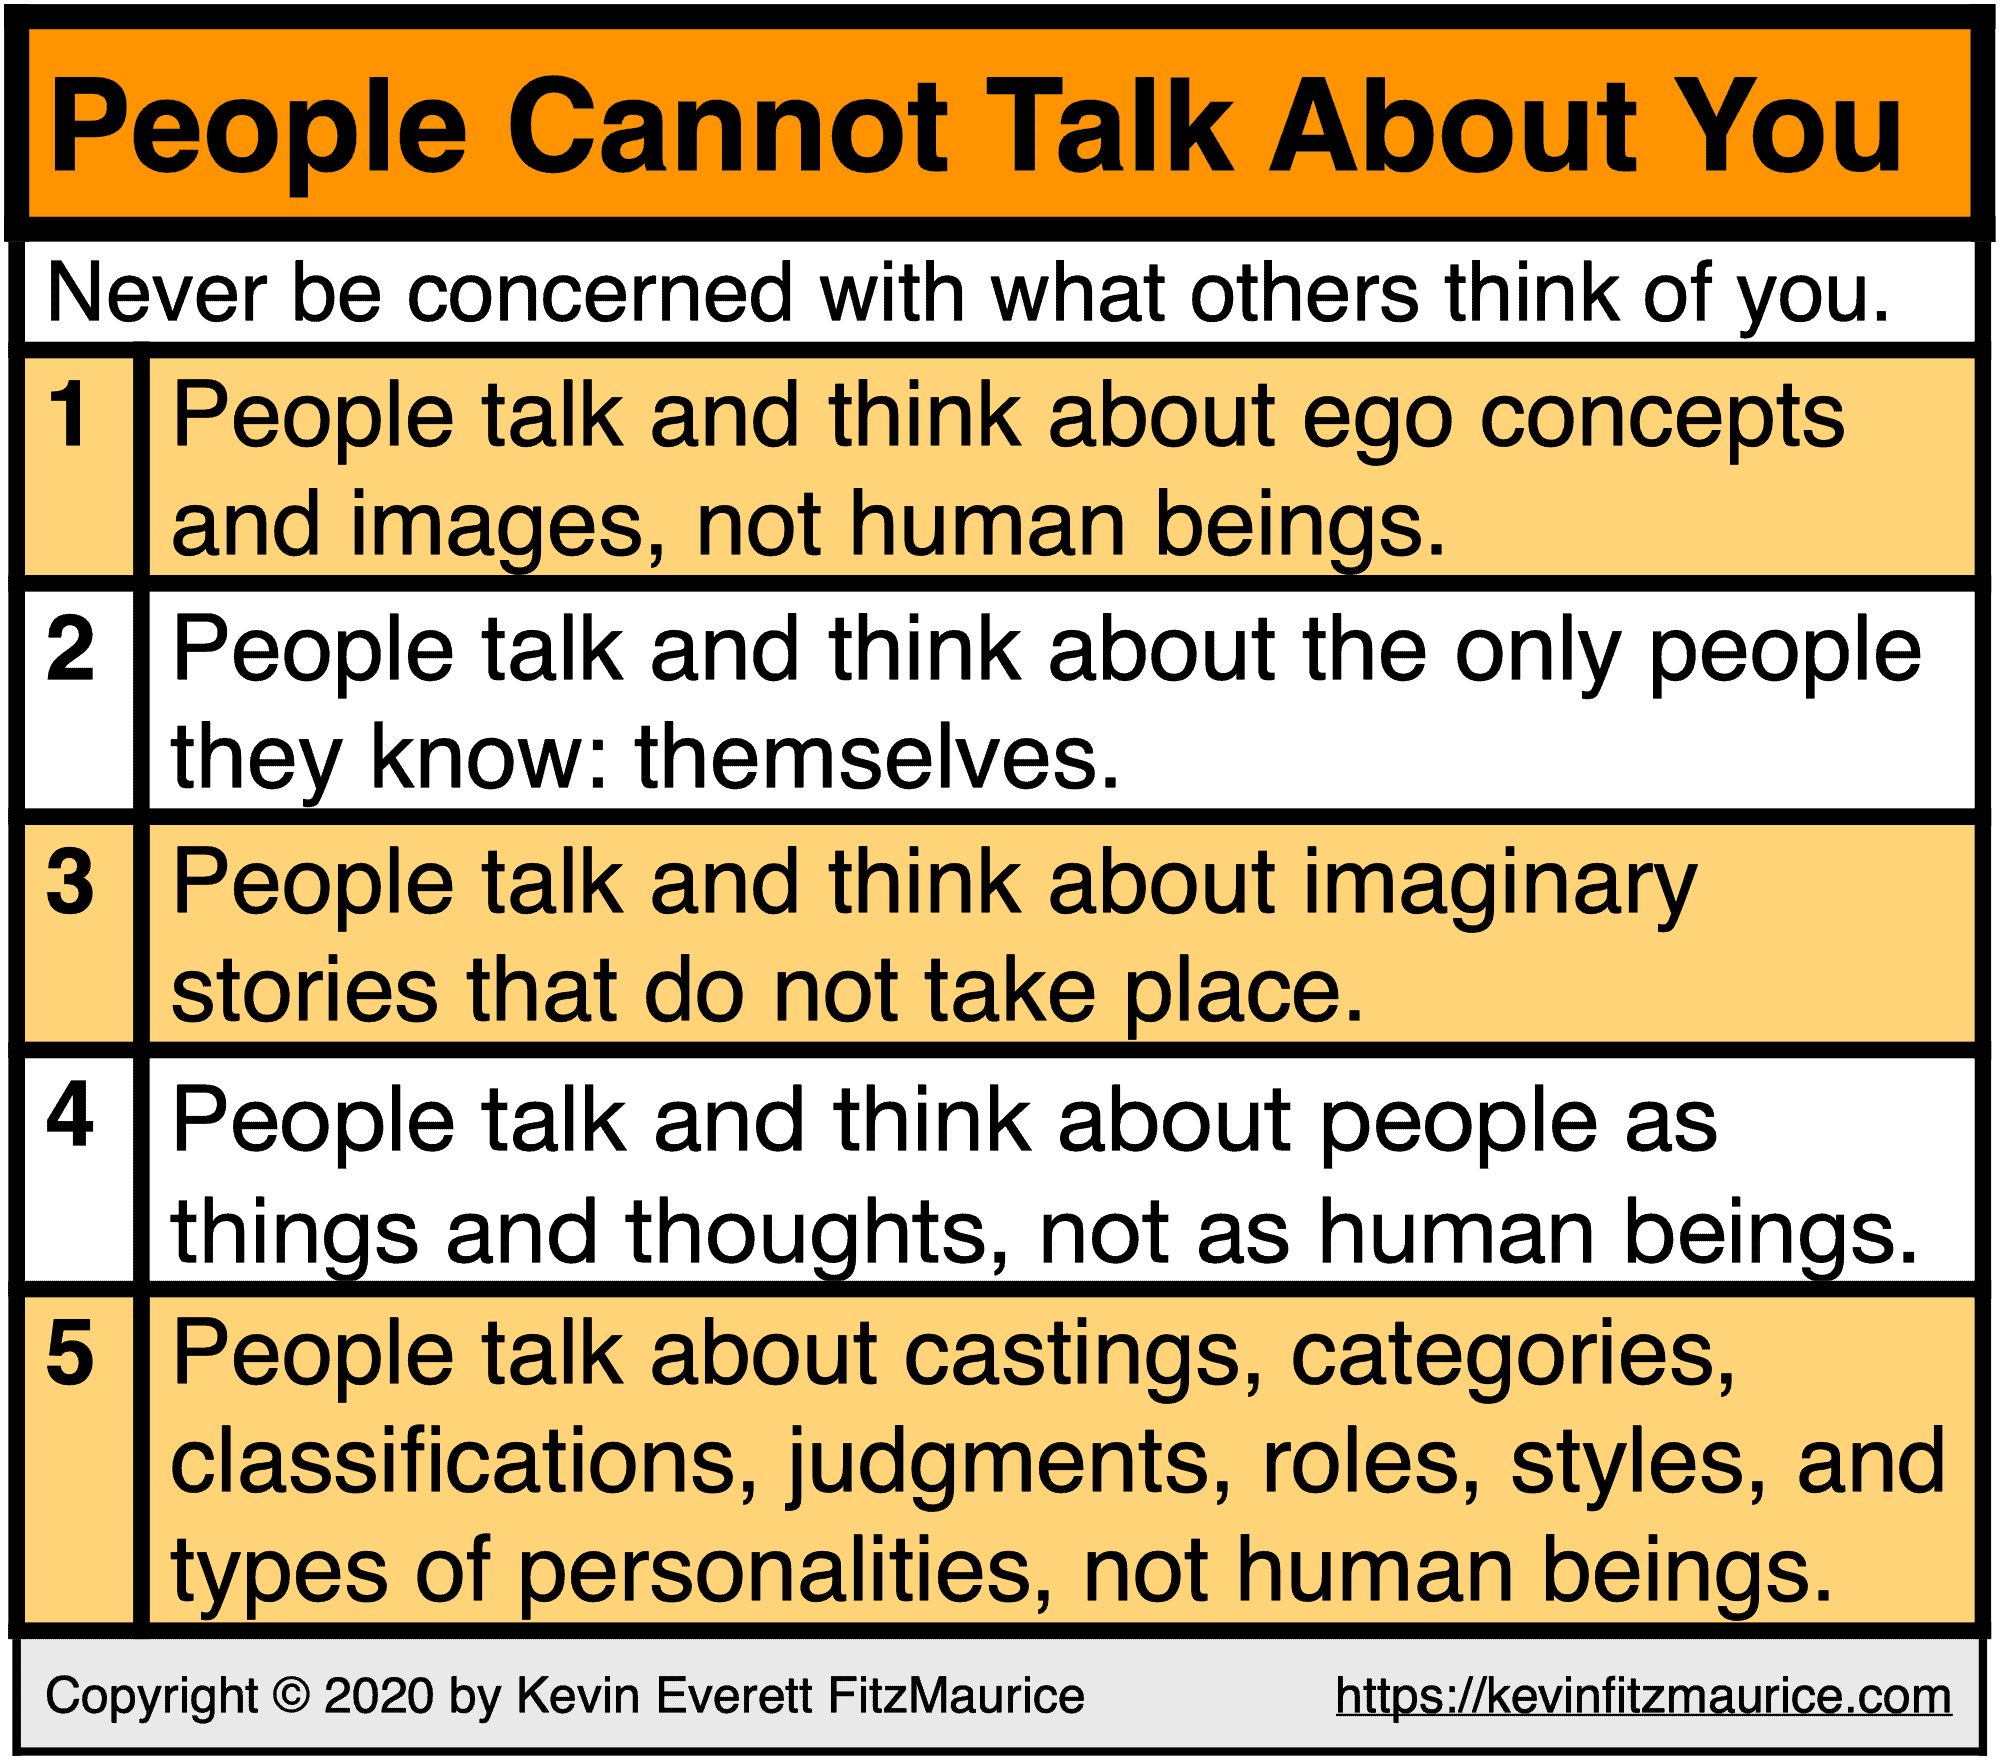 People Cannot Talk About You